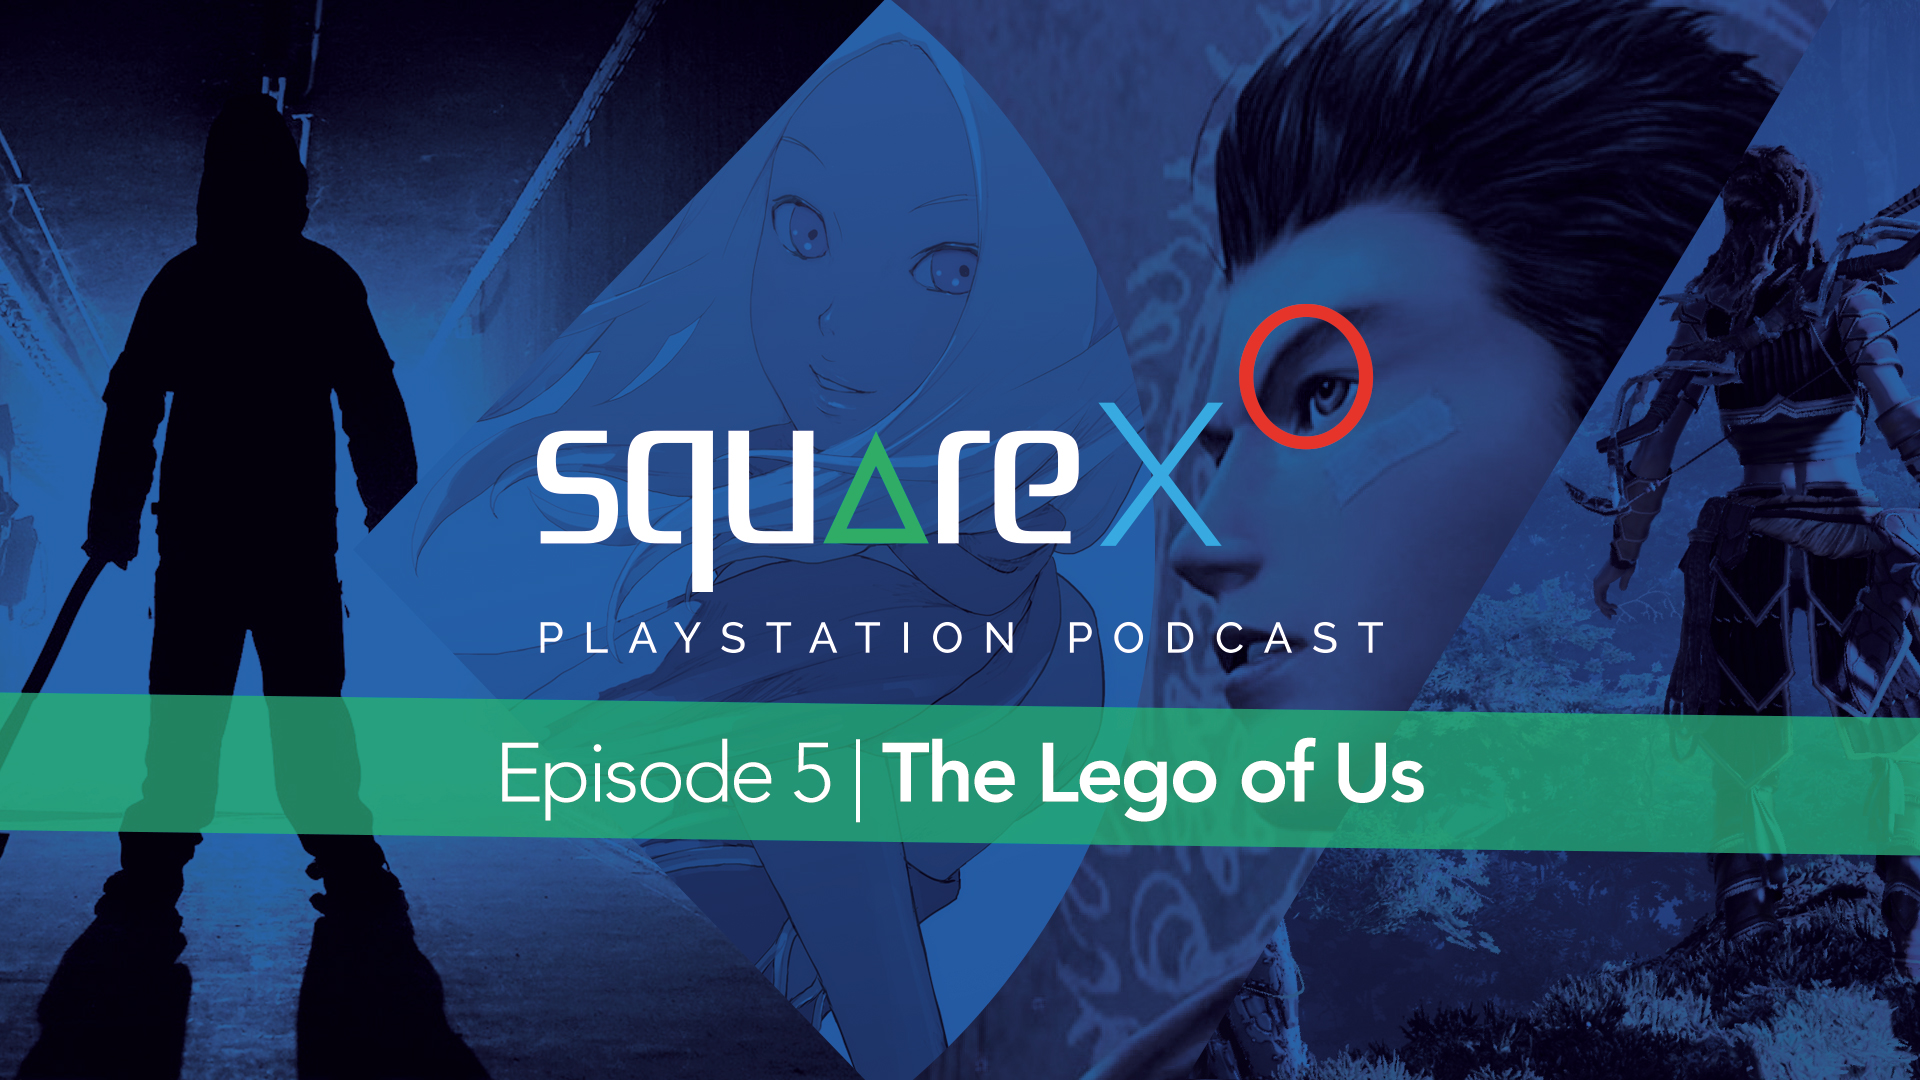 Episode 5 | The Lego of Us